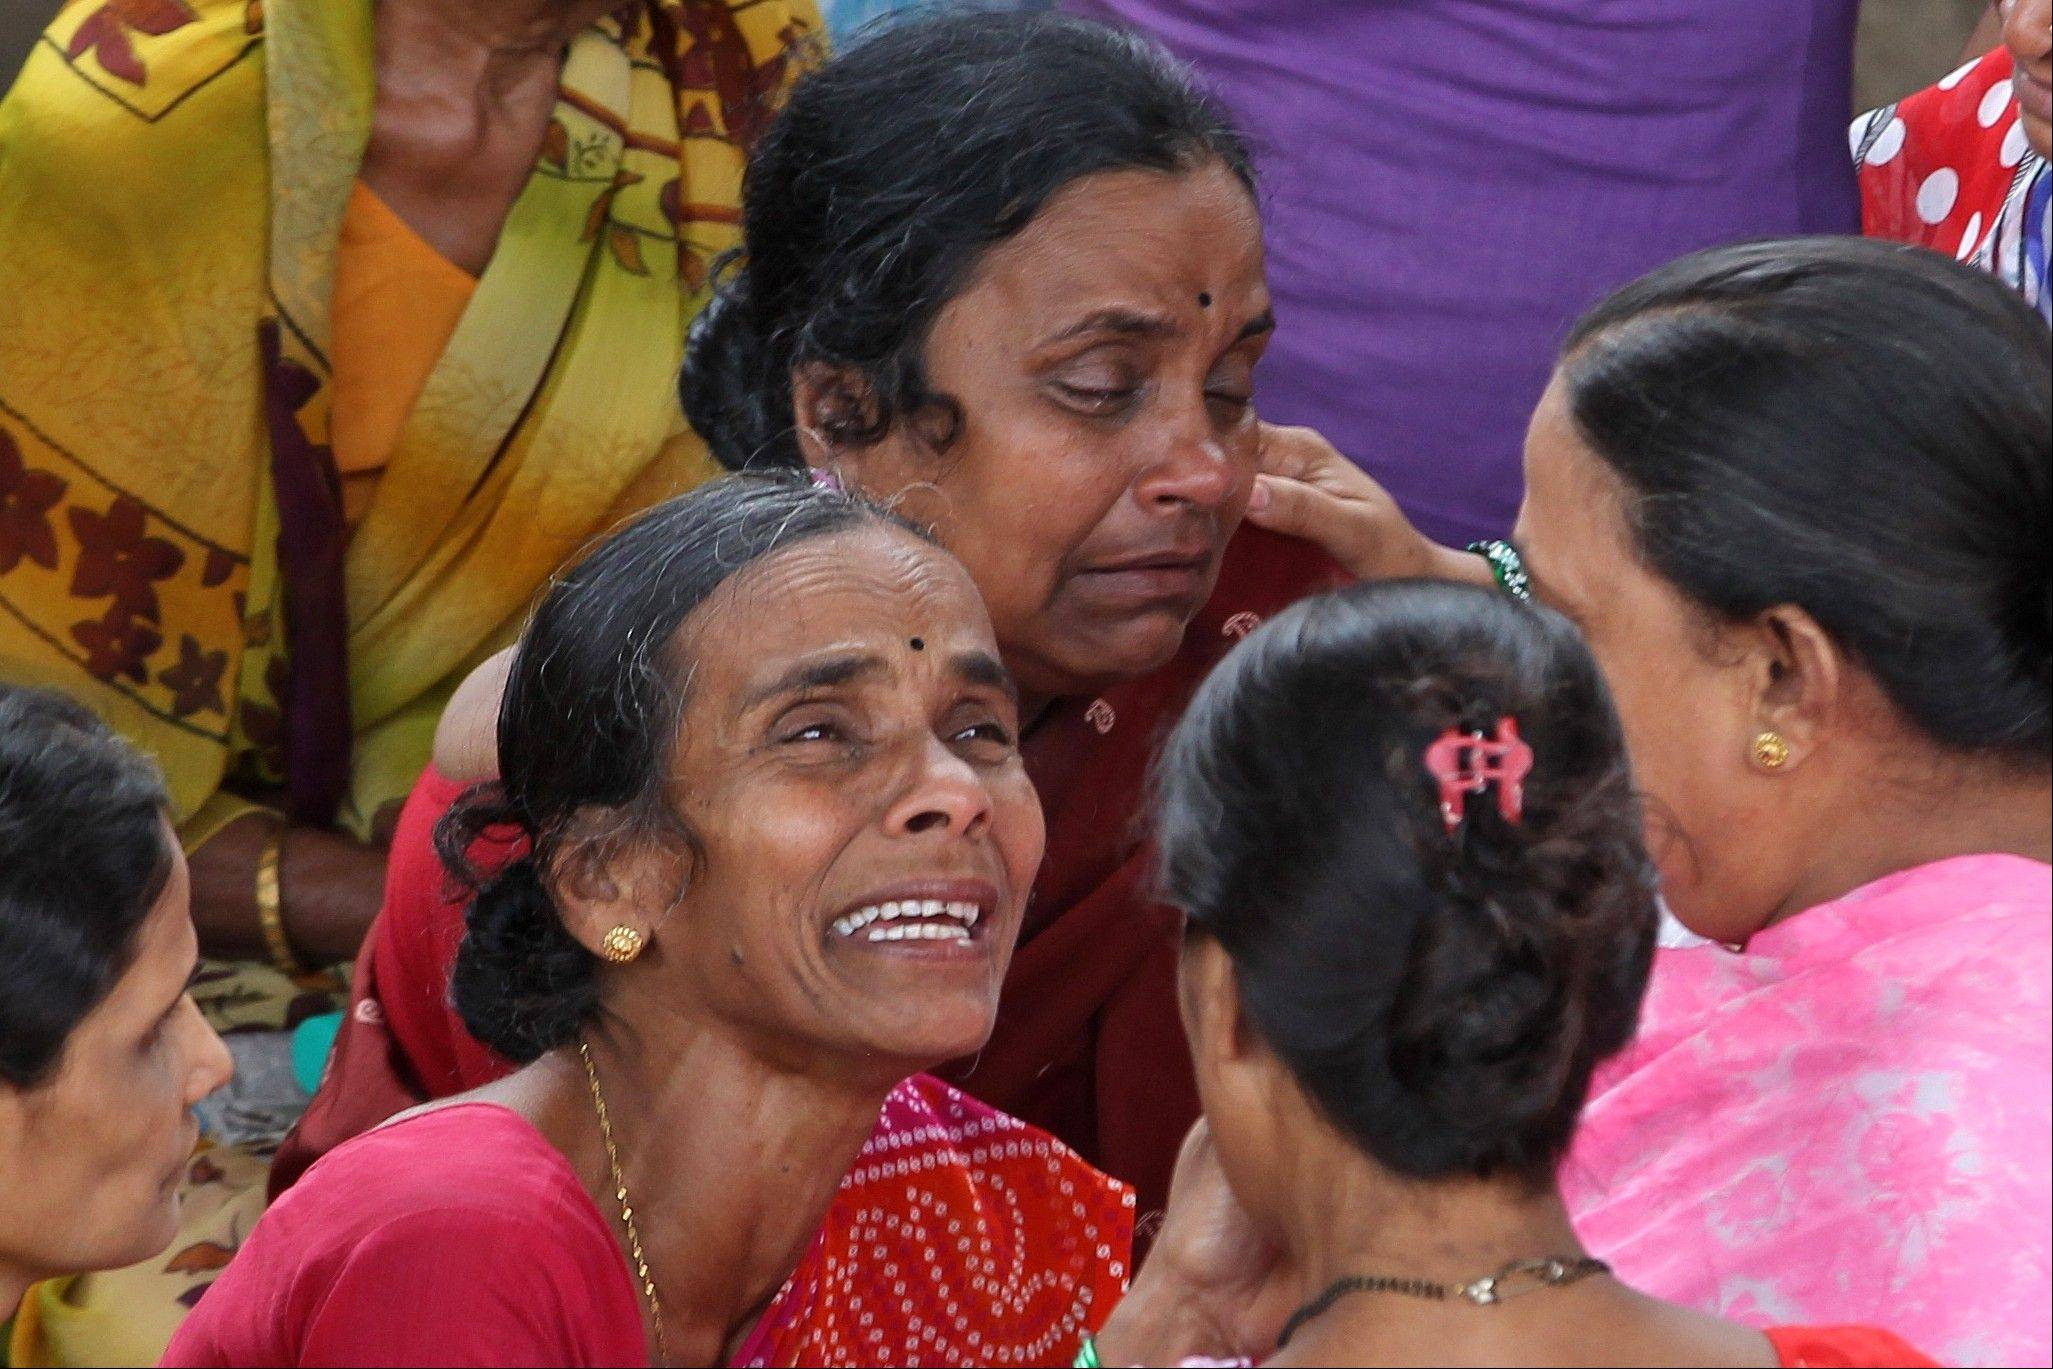 Indian women cry for missing relatives at the site of a building that collapsed, in Mumbai, India, Saturday, Sept. 28. Frantic relatives kept up a vigil at the site of the collapsed apartment building that killed more than 30 people in India�s financial capital of Mumbai as the search for survivors grew bleak on Saturday.